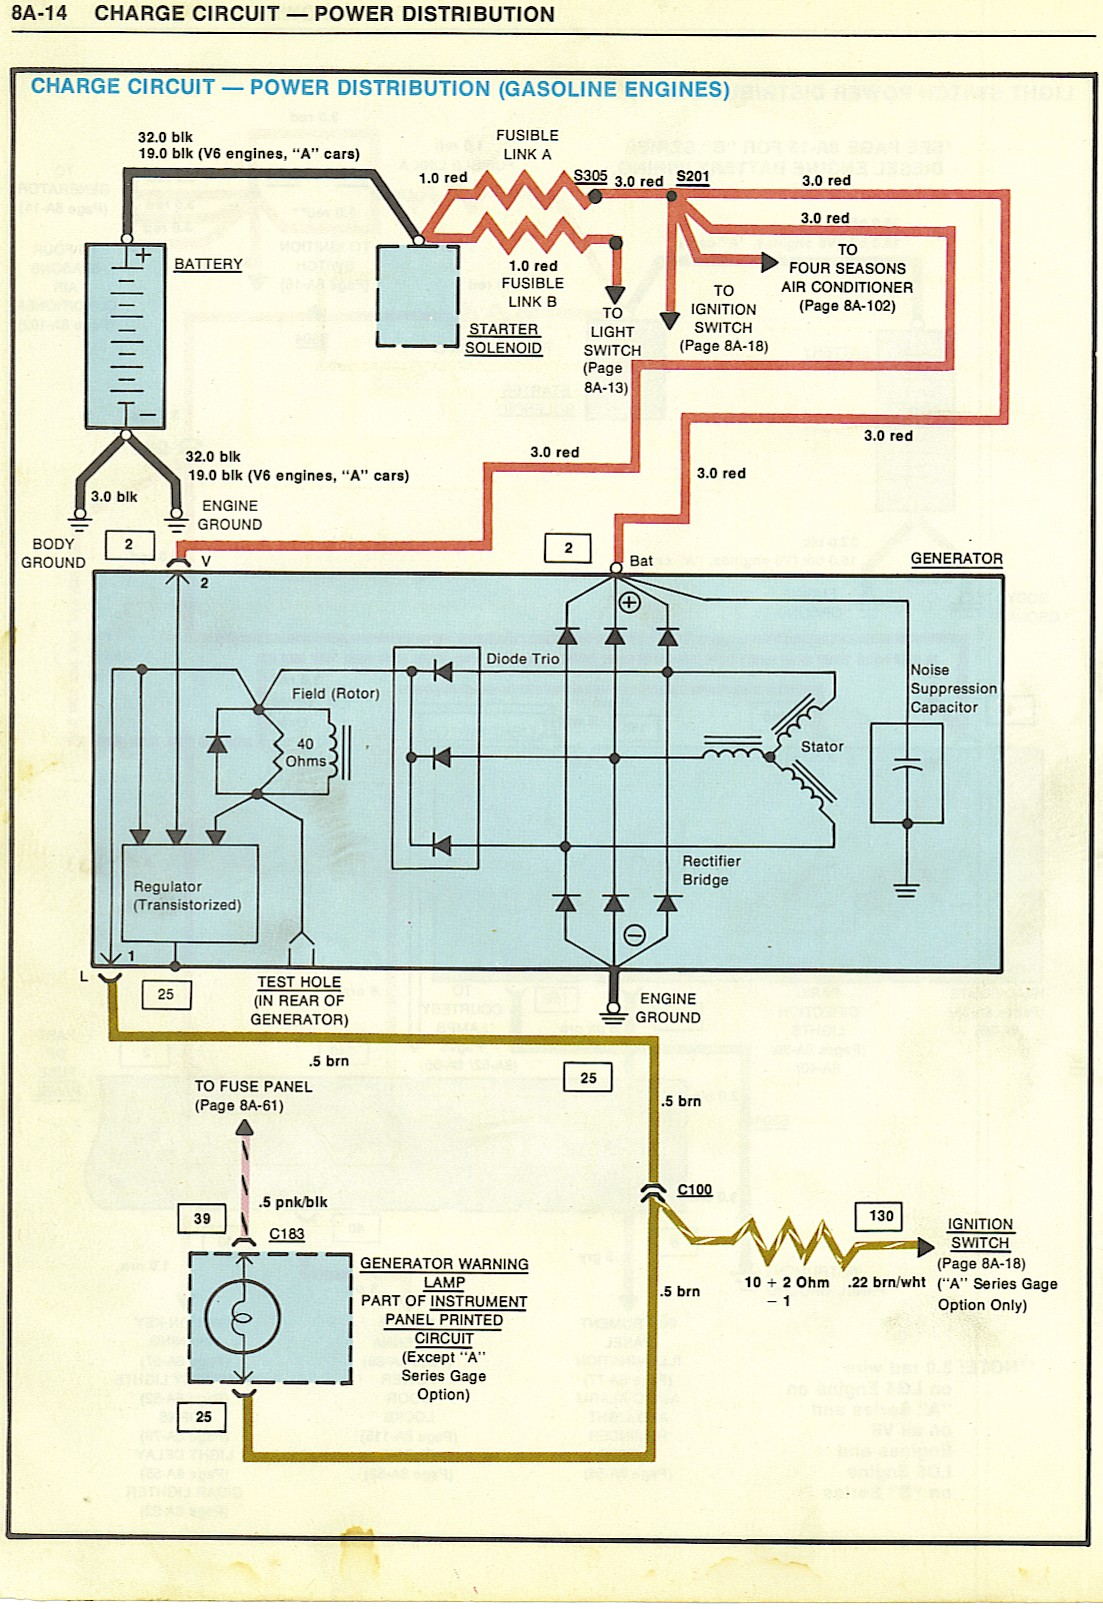 2004 monte carlo fuse diagram 1985 monte carlo wiring diagram 31 85 Monte Stock Ralley hight resolution of wiring diagrams 85 monte carlo wiring diagram 1987 monte carlo ignition wiring diagram